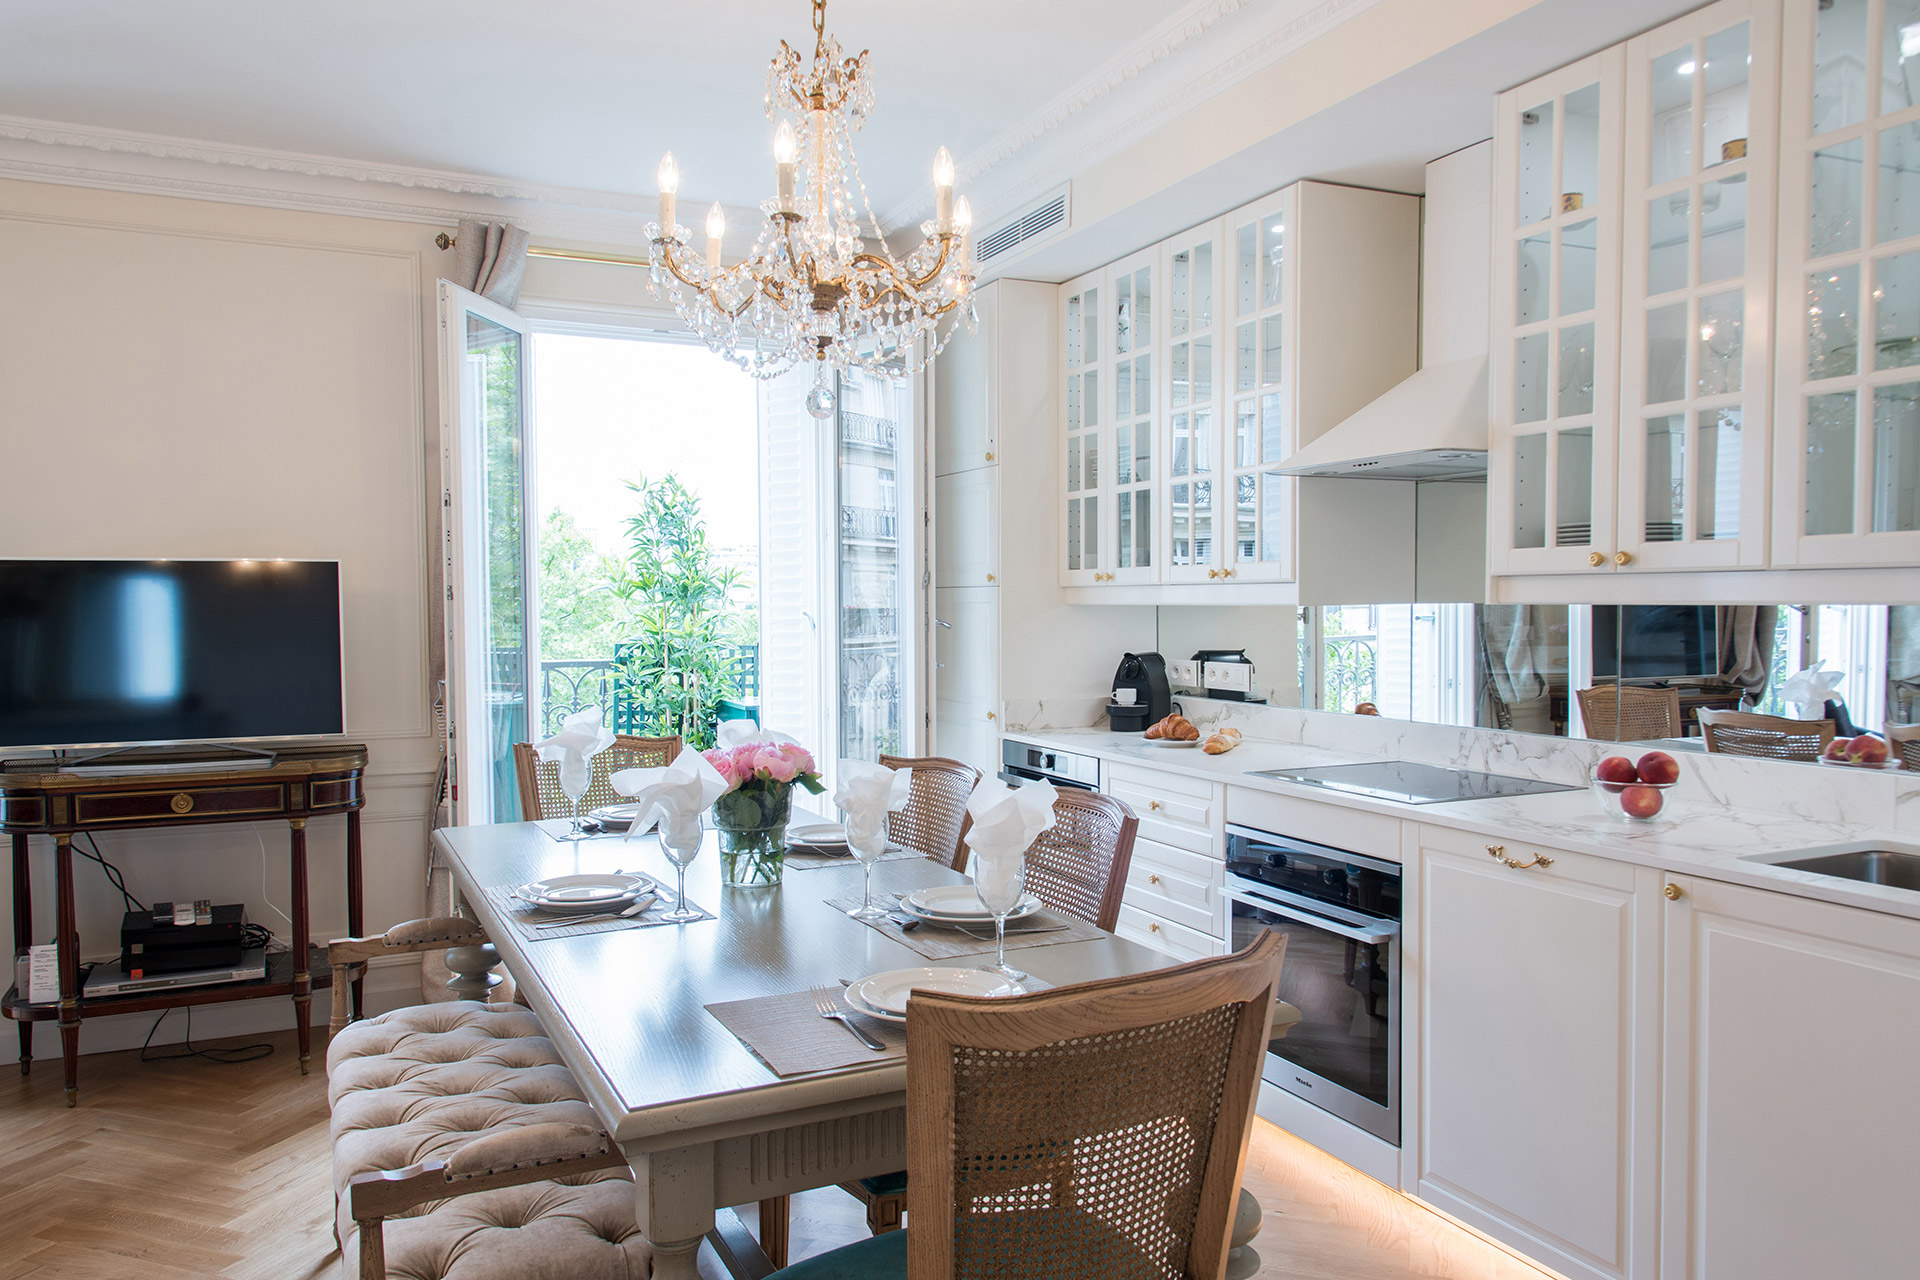 Enjoy dining at home in the Merlot vacation rental offered by Paris Perfect